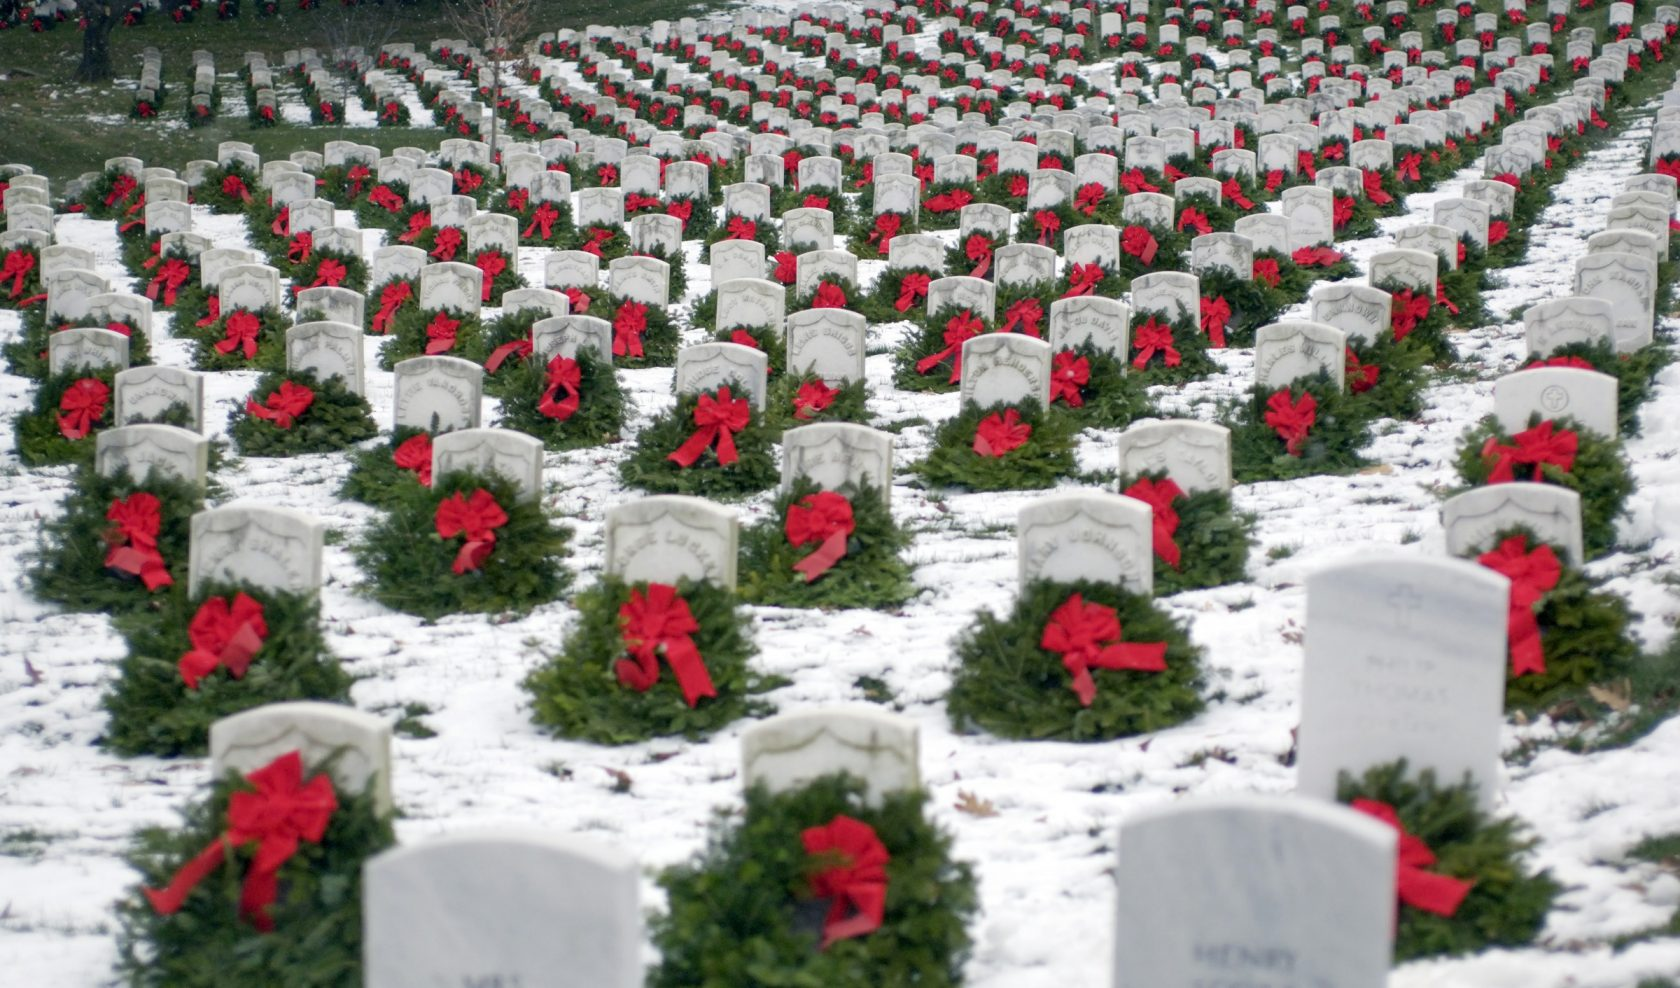 Hundreds of volunteers will gather at Arlington National Cemetery to place  thousands of donated Christmas wreaths on head stones on Dec. 15. (U.S. Air Force photo by Master Sgt. Jim Varhegyi)